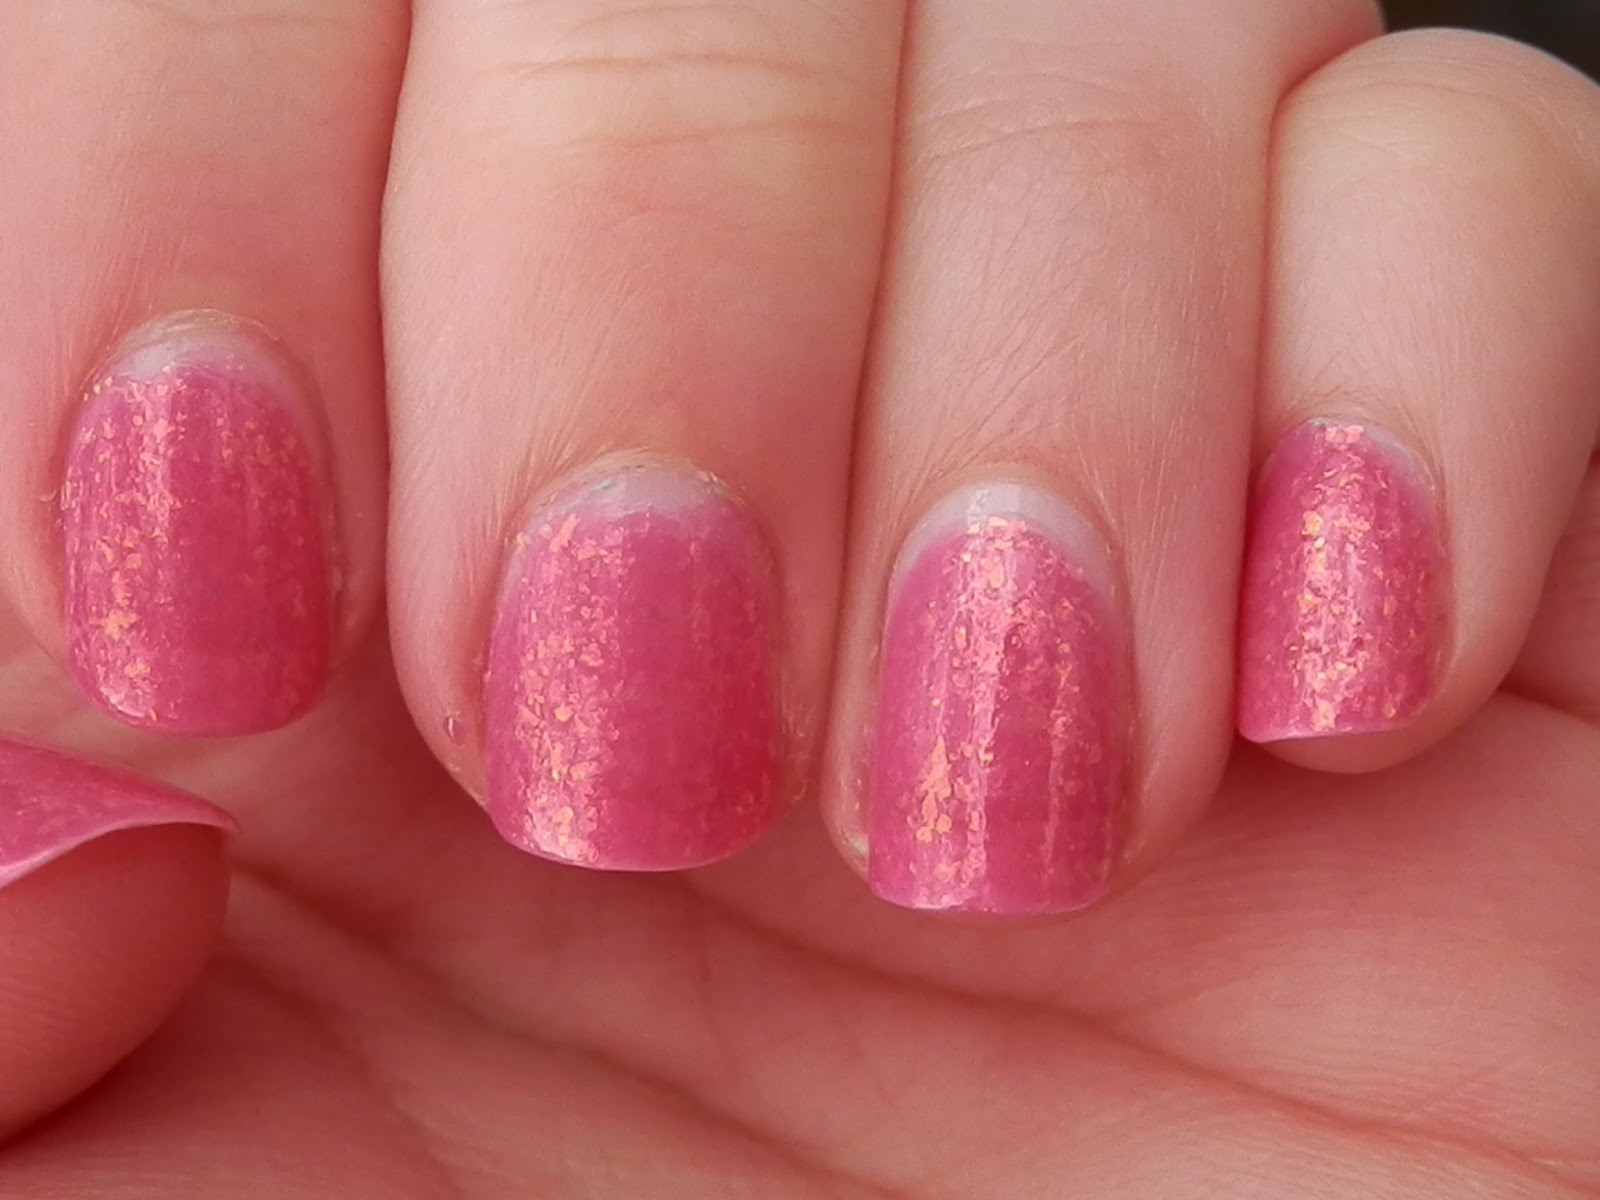 Deborah Lippmann Sweet Dreams swatch